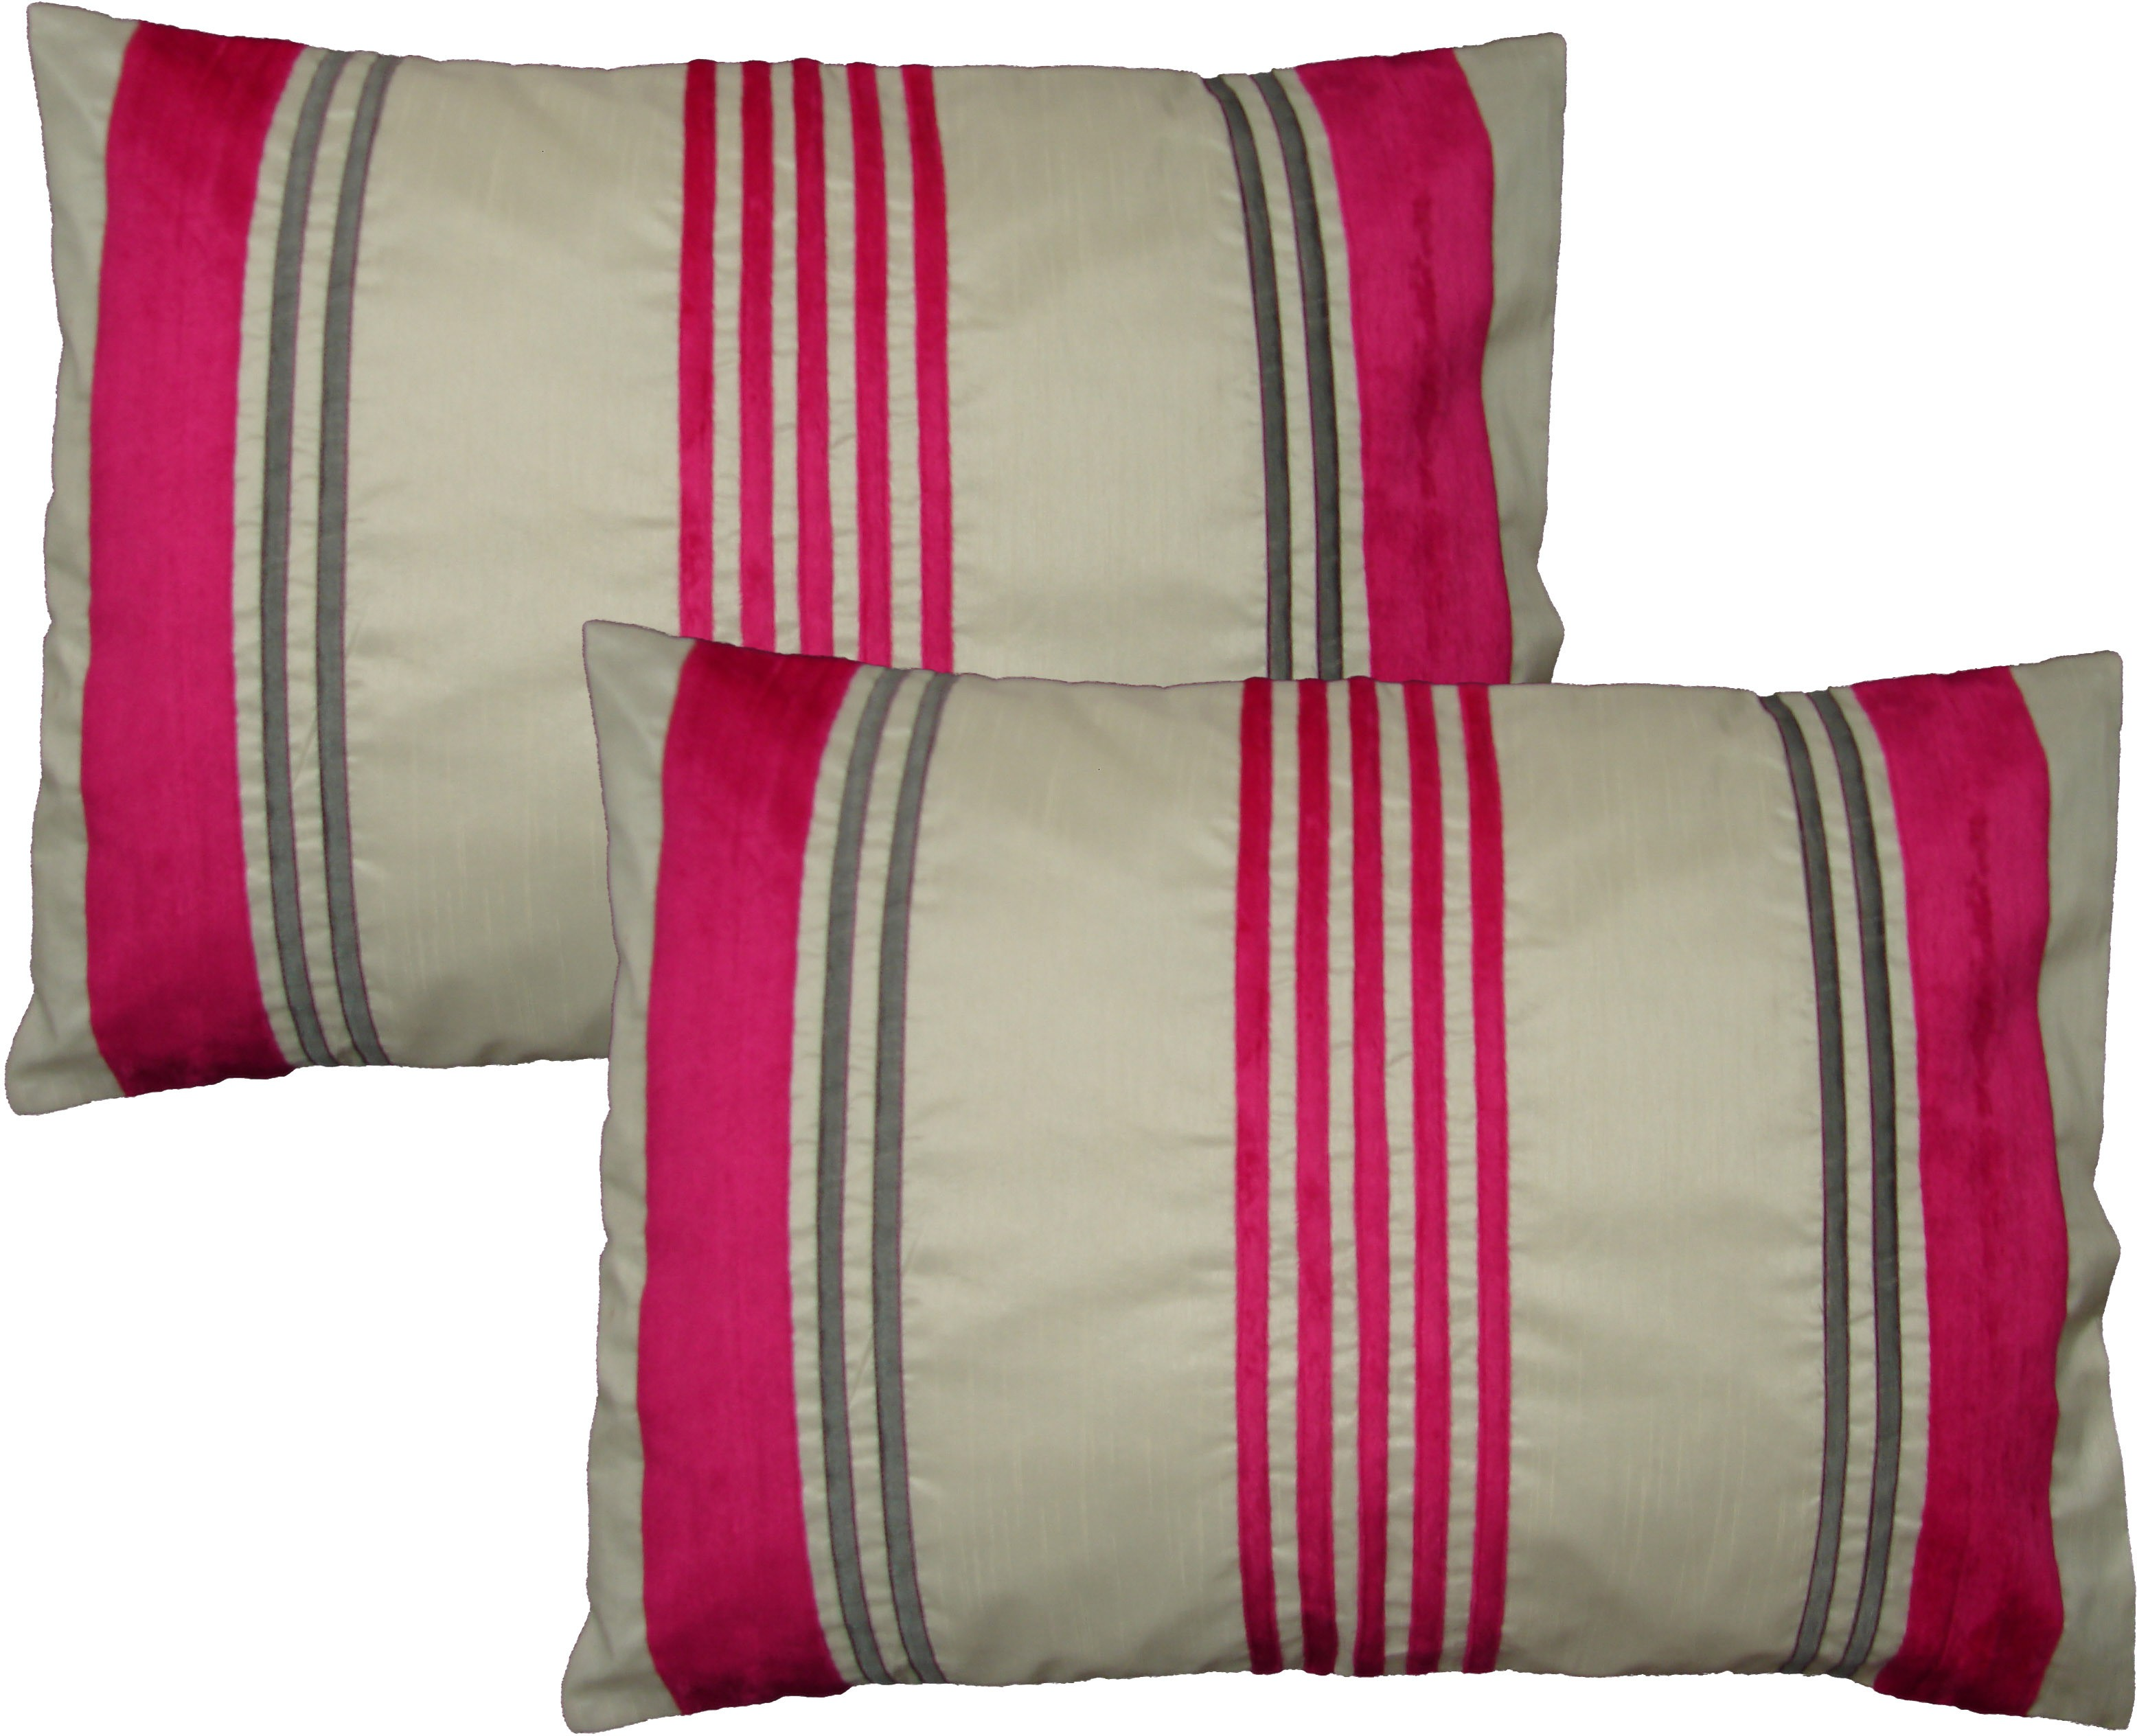 Home Shine Striped Pillows Cover